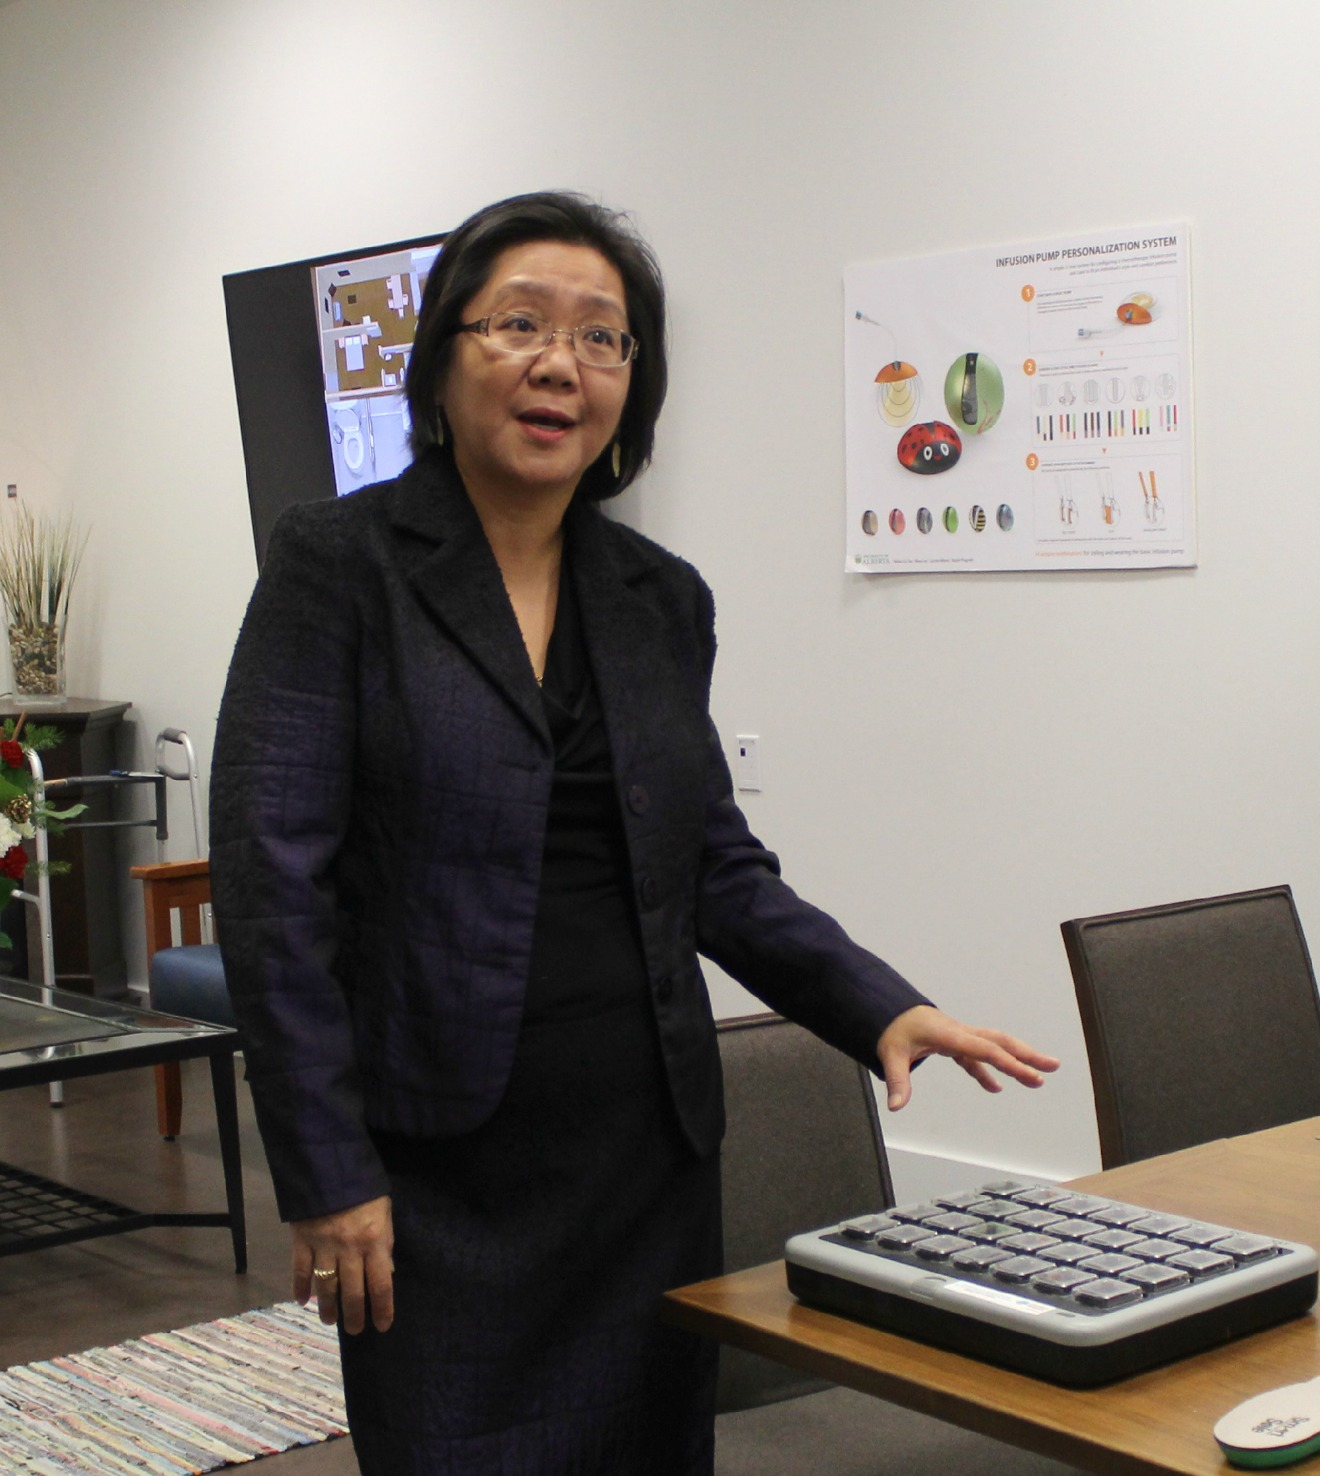 Dr. Lili Liu, Chair, Occupational Therapy, co-academic lead for the U of A's Smart Condo